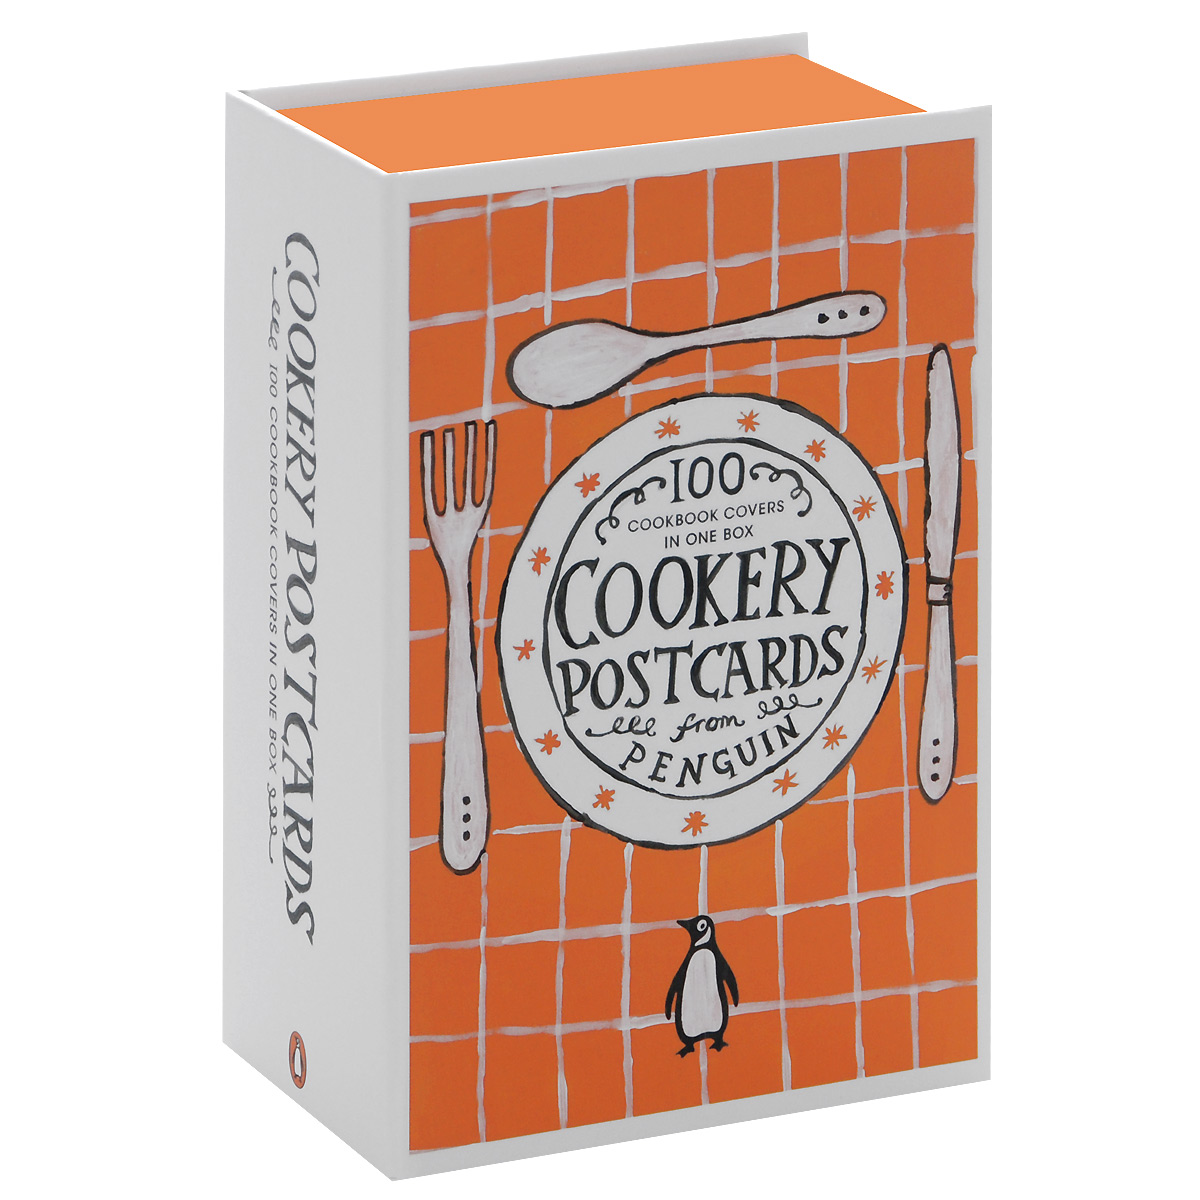 Cookery Postcards: 100 Cookbook Covers in One Box free shipping 2sp0115t2a0 12 igbt driver module the new element quality assurance can directly buy or contact the seller